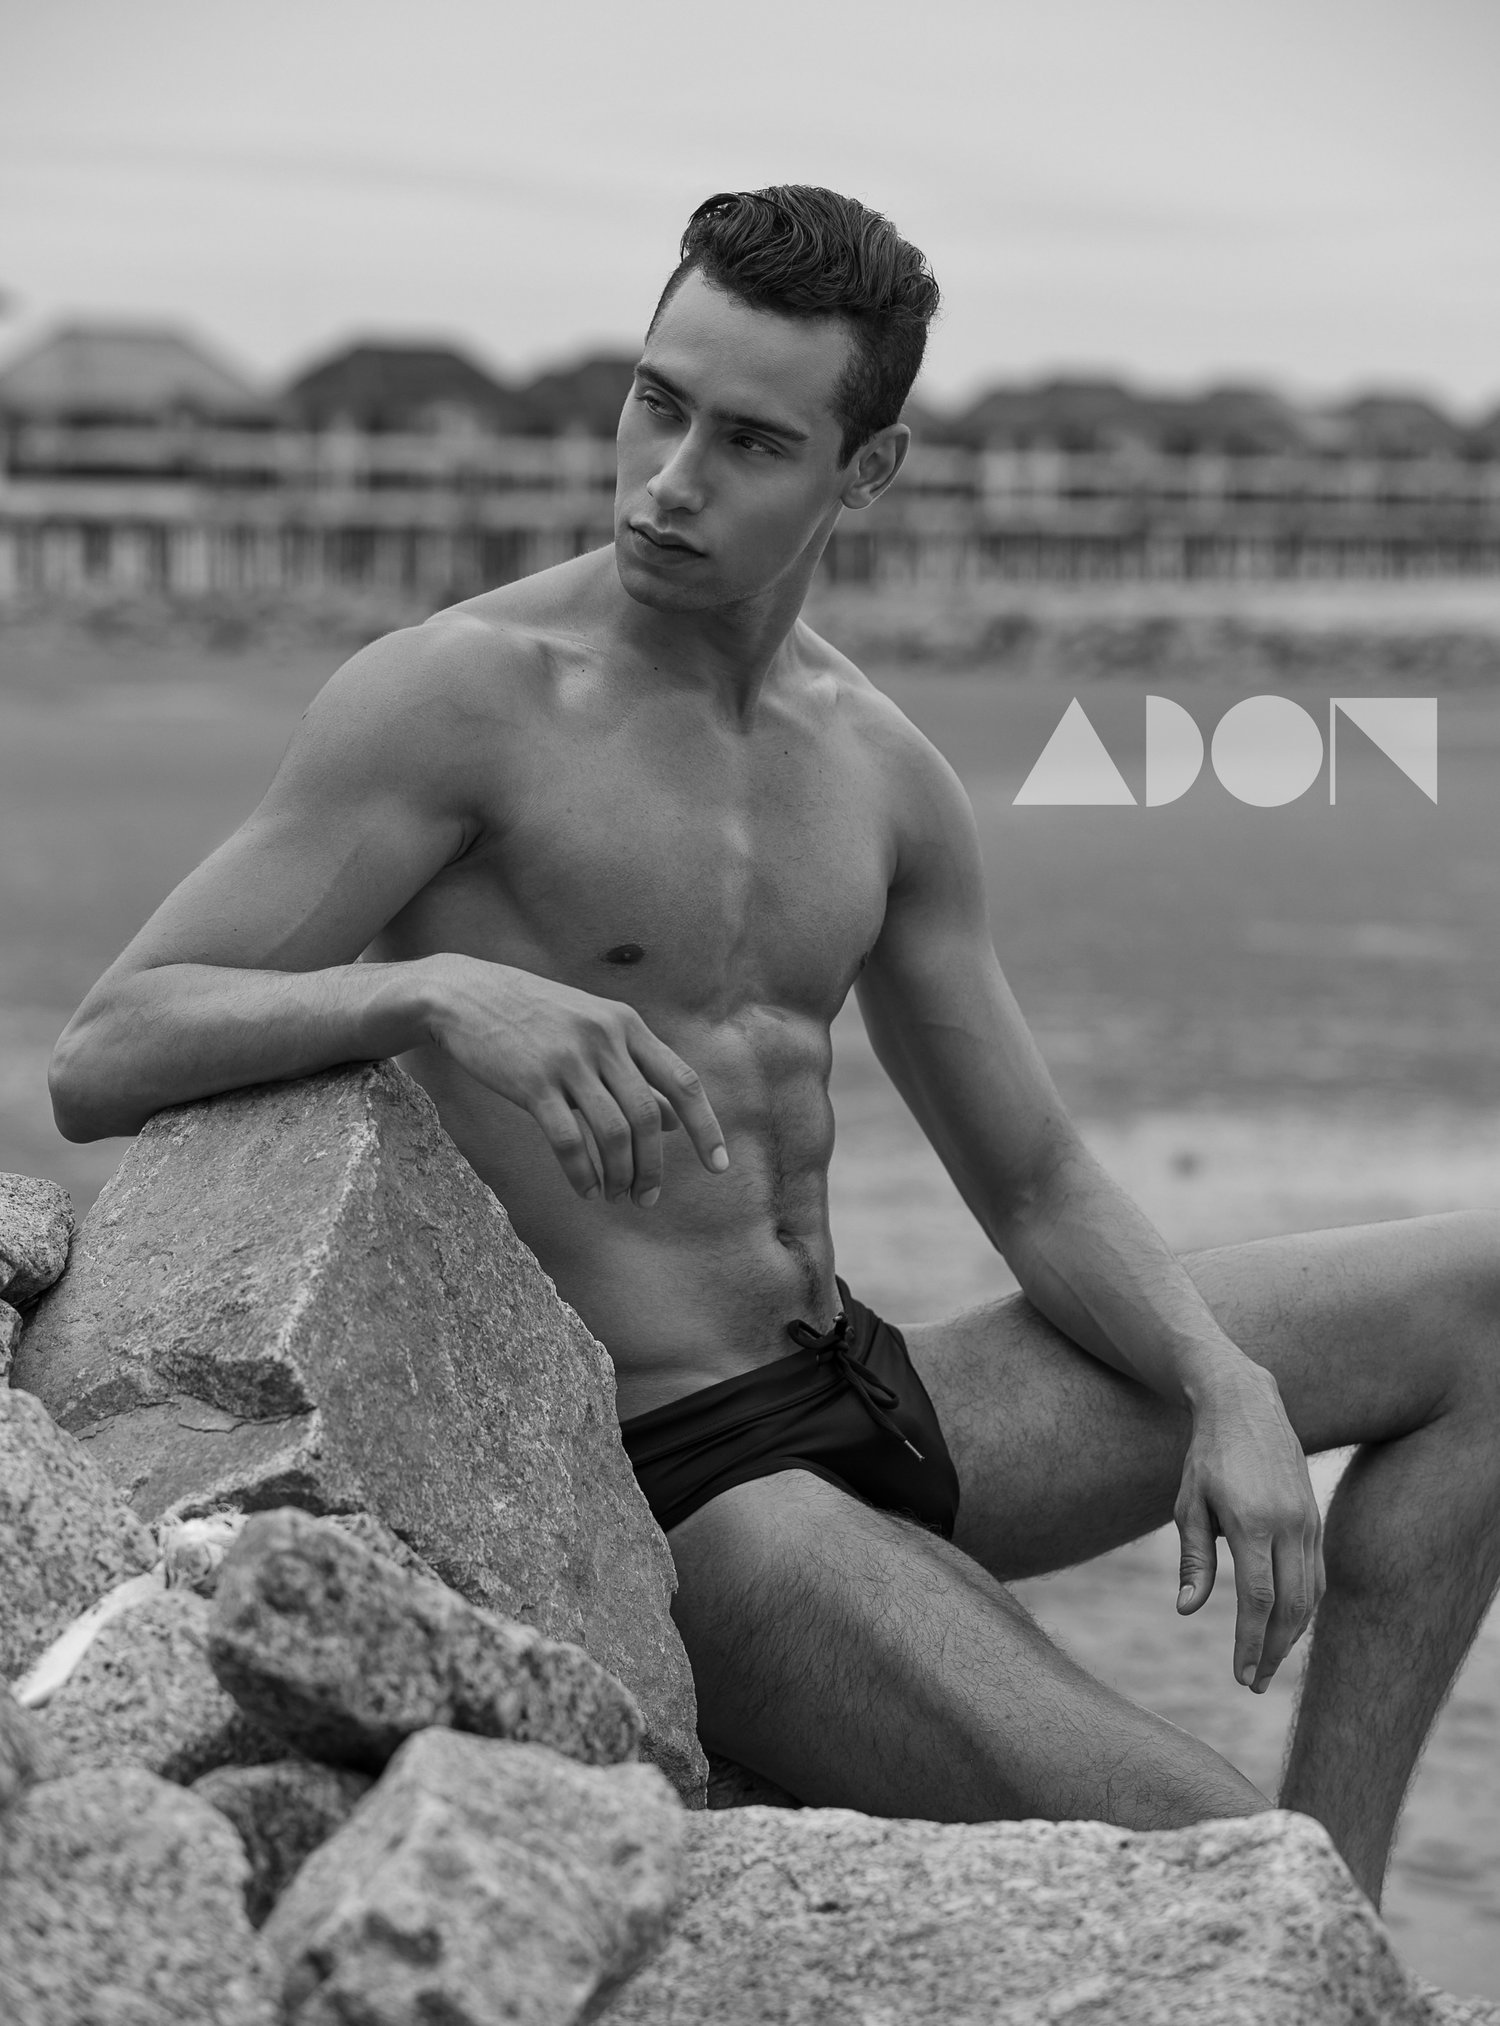 Adon Exclusive: Model Gustavo Dias By Jason Oung